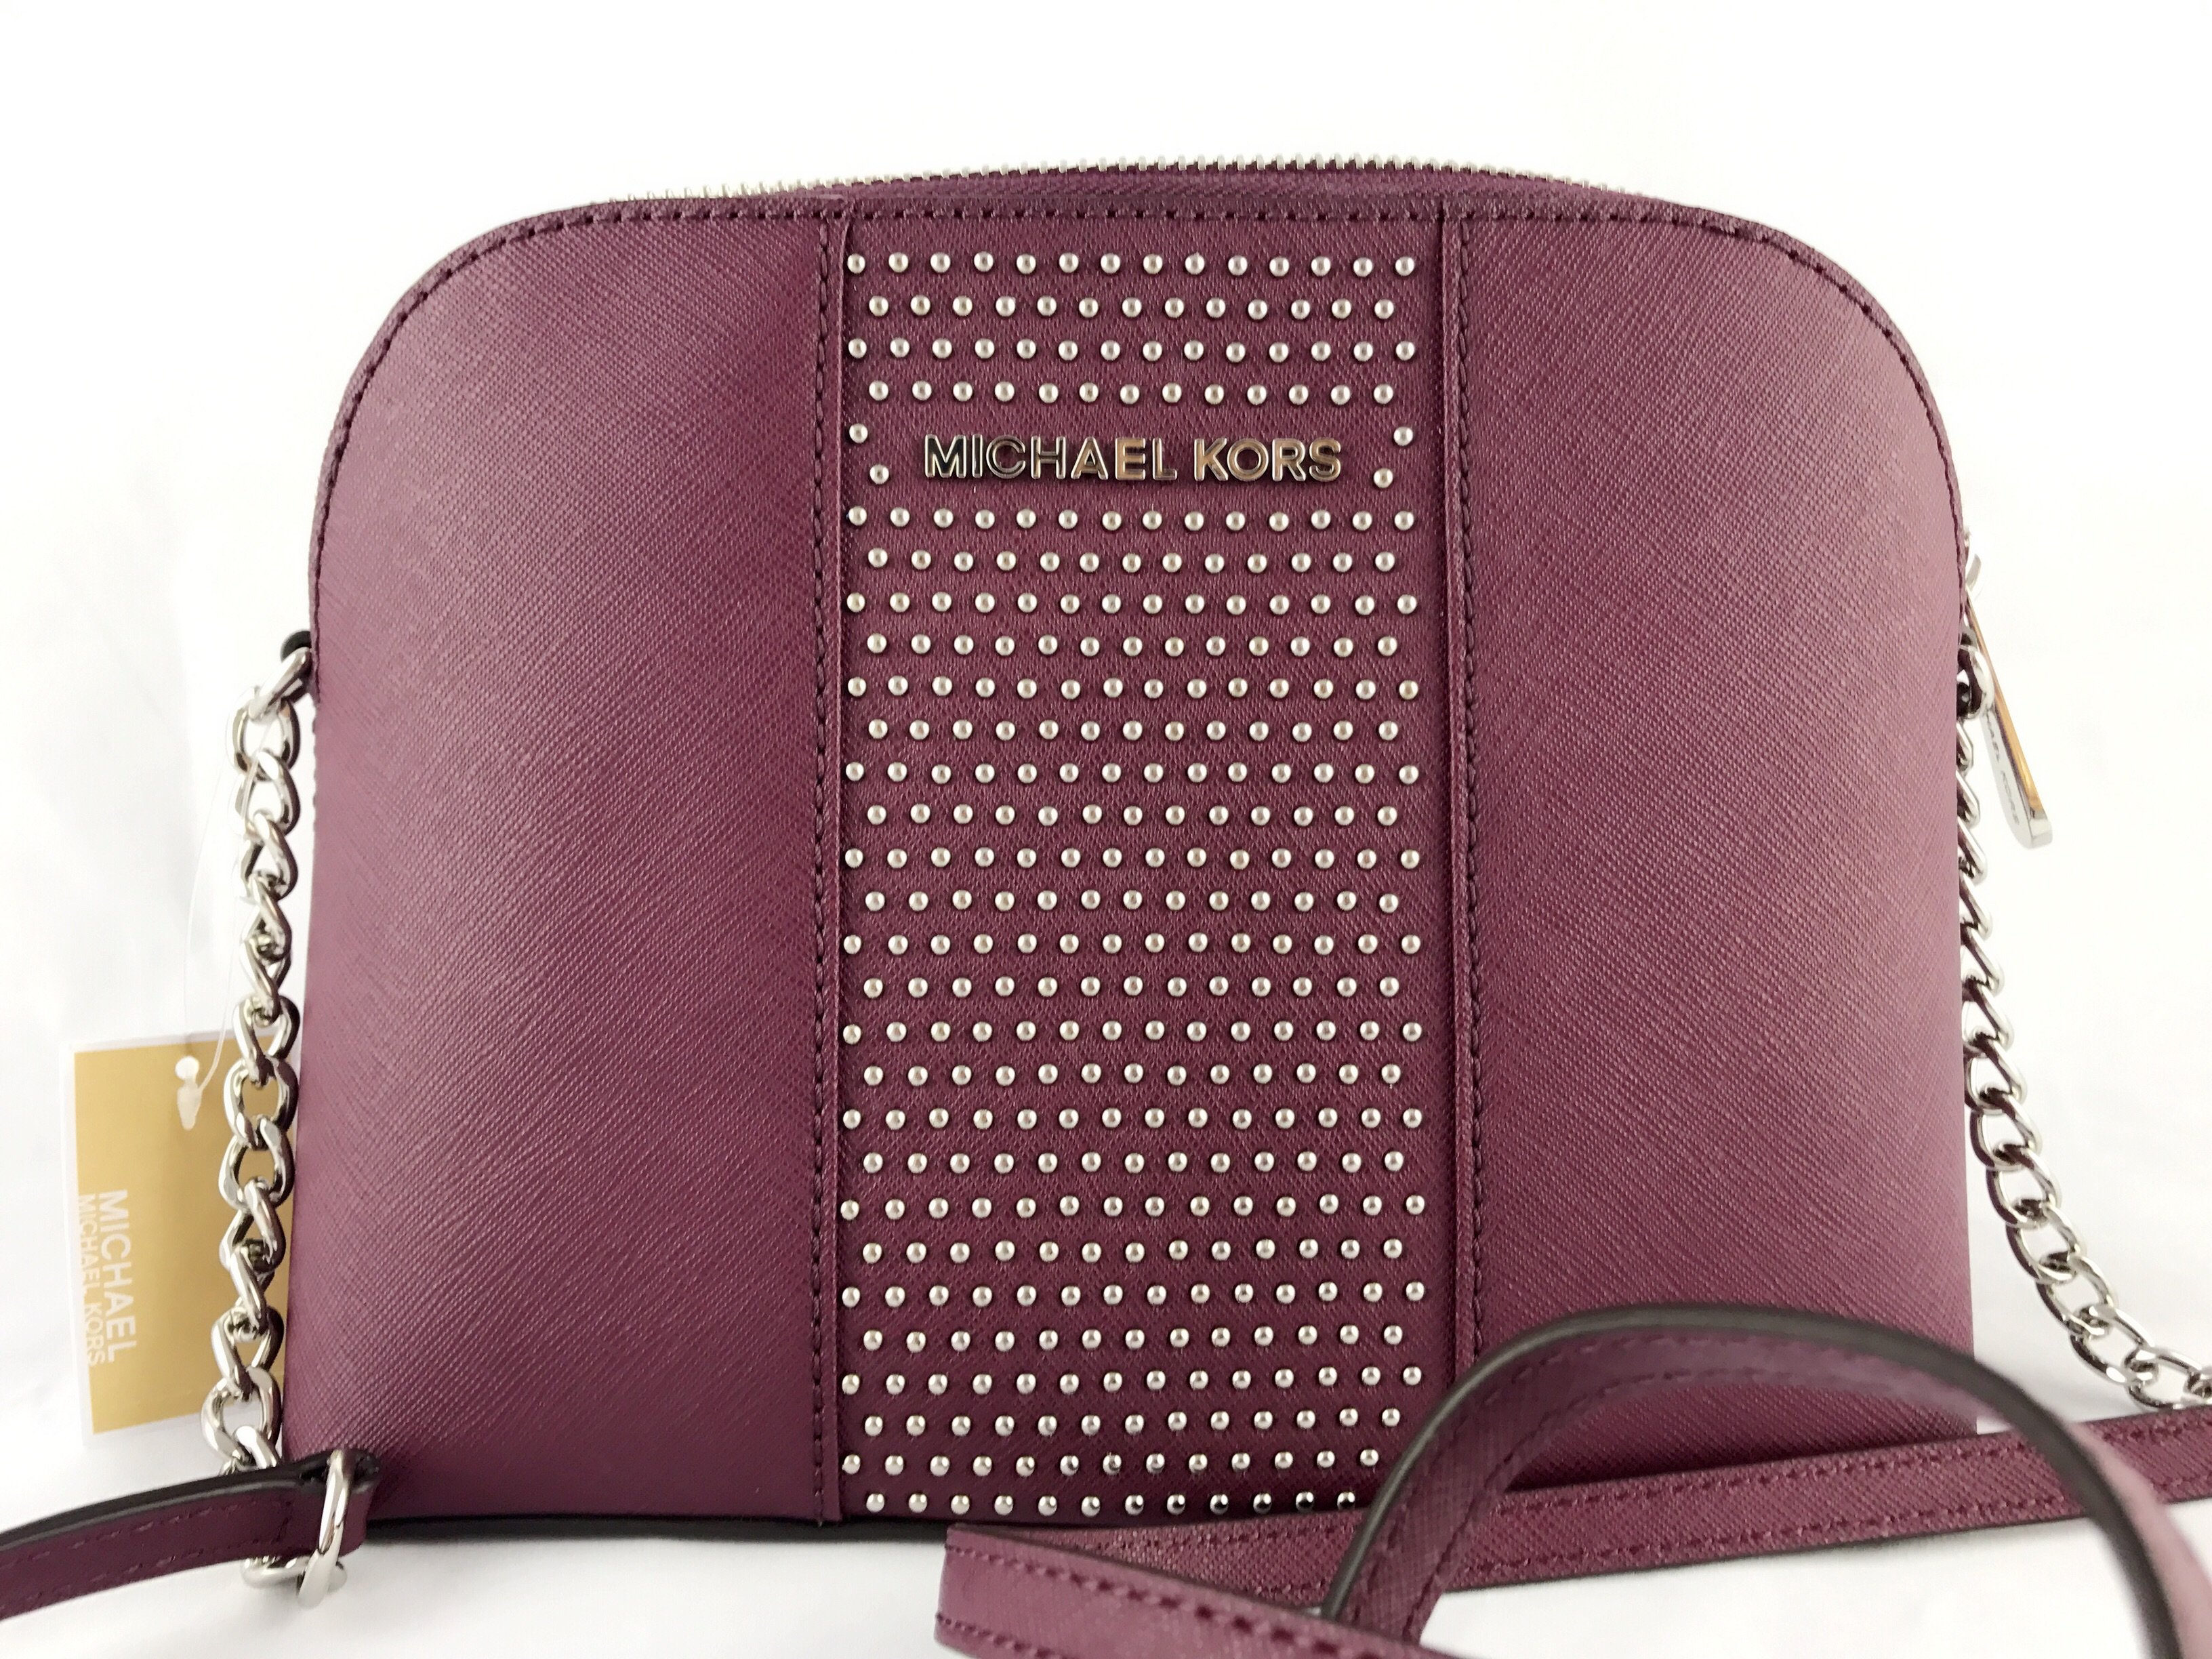 e58e0867b0dd ... discount michael kors micro studded cindy dome chain crossbody bag plum  walmart a7a82 e61bf